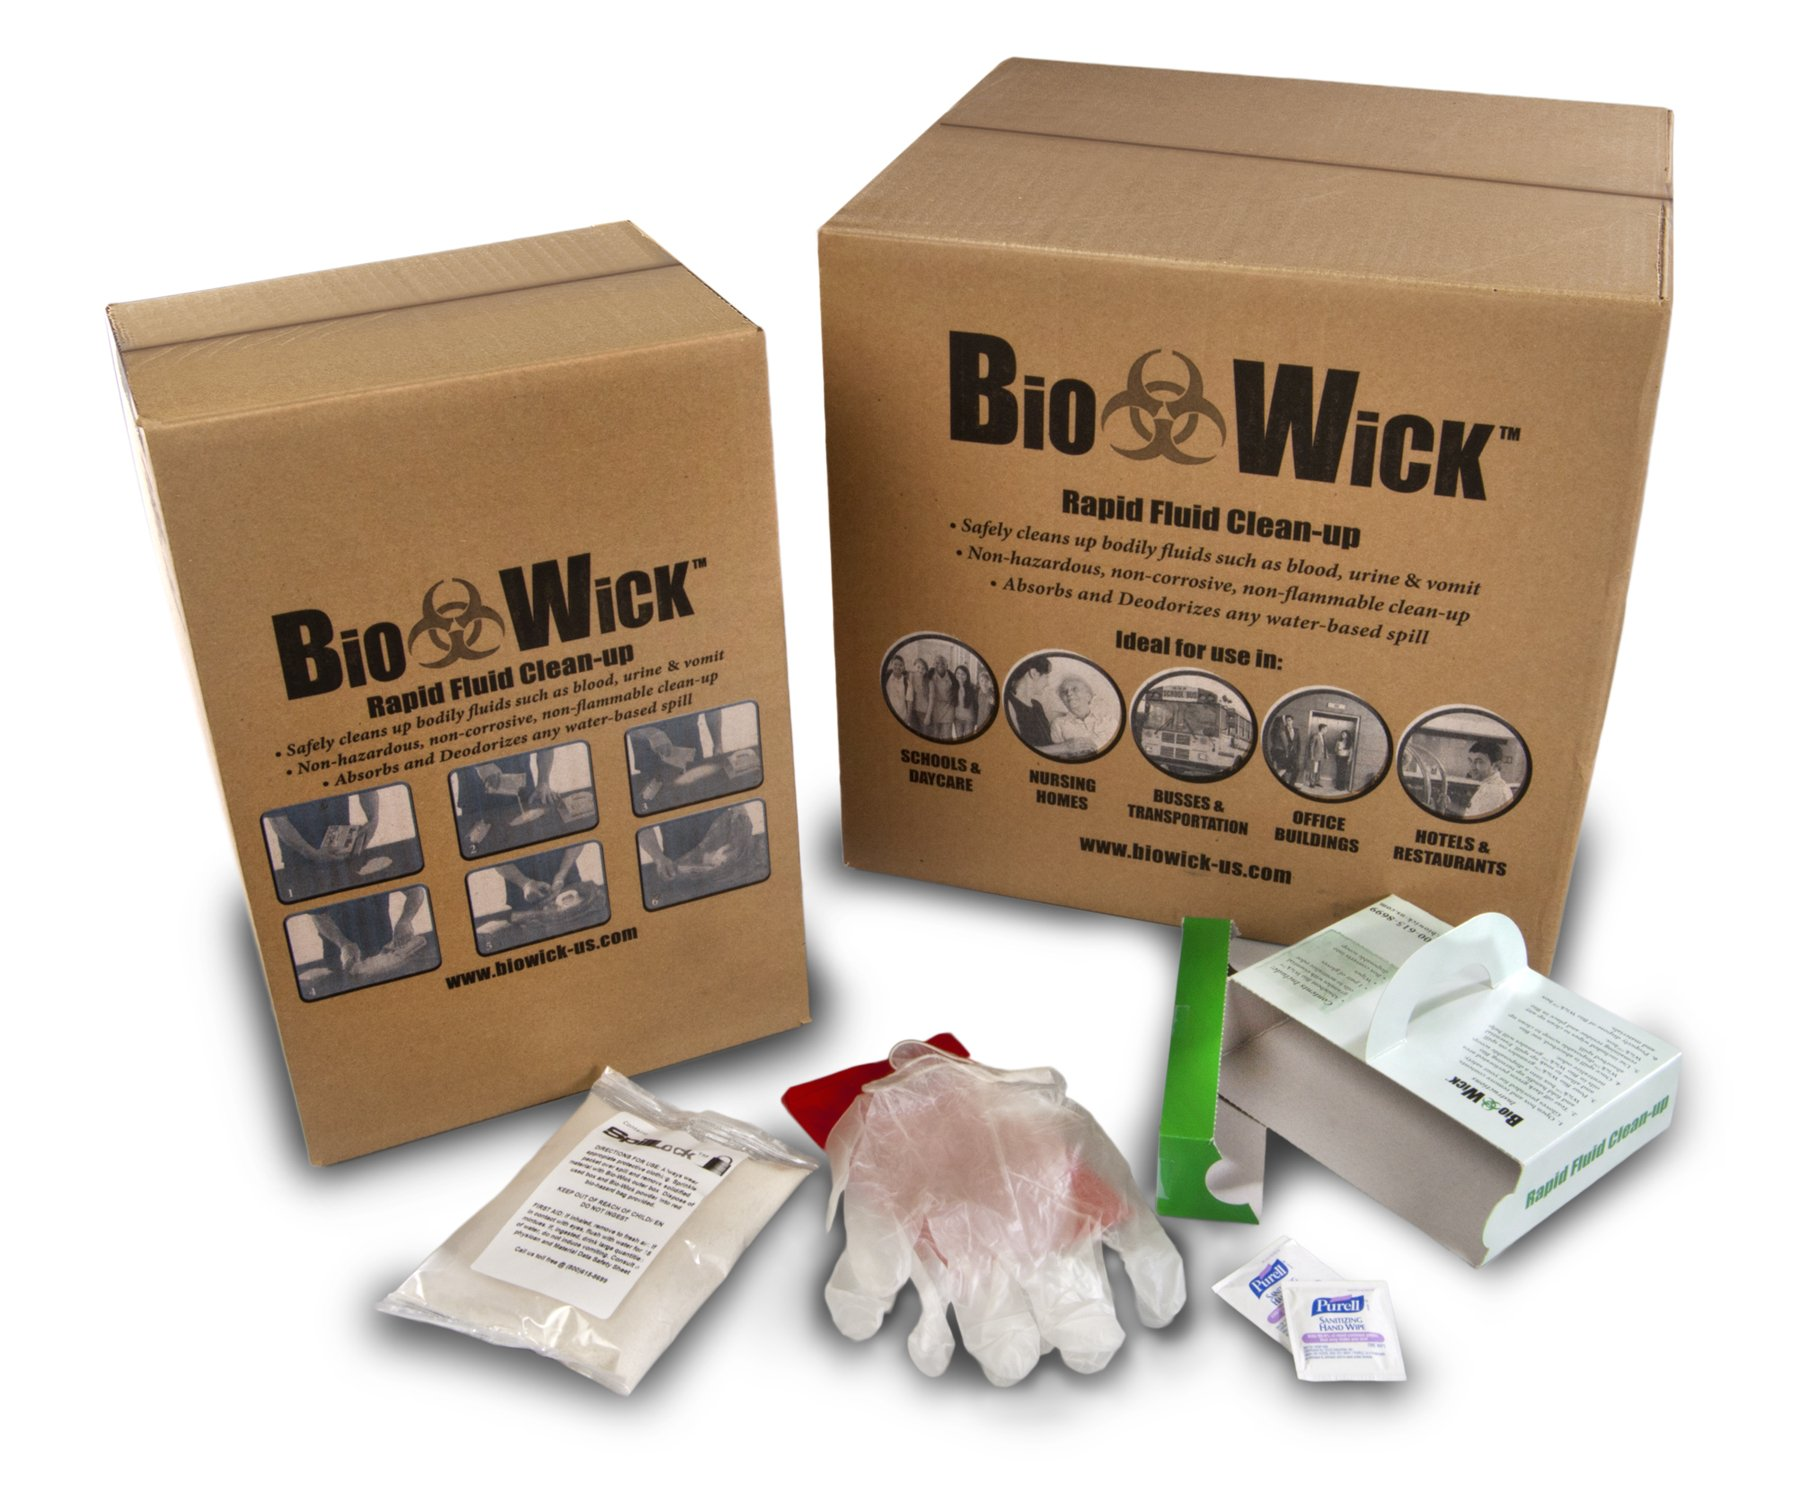 ESP BIOWICK-10 5 Piece Bio-Wick Universal Water Based Rapid Absorbent Fluid Cleanup Spill Kit, 3L Absorbency, Off White (Pack of 10)